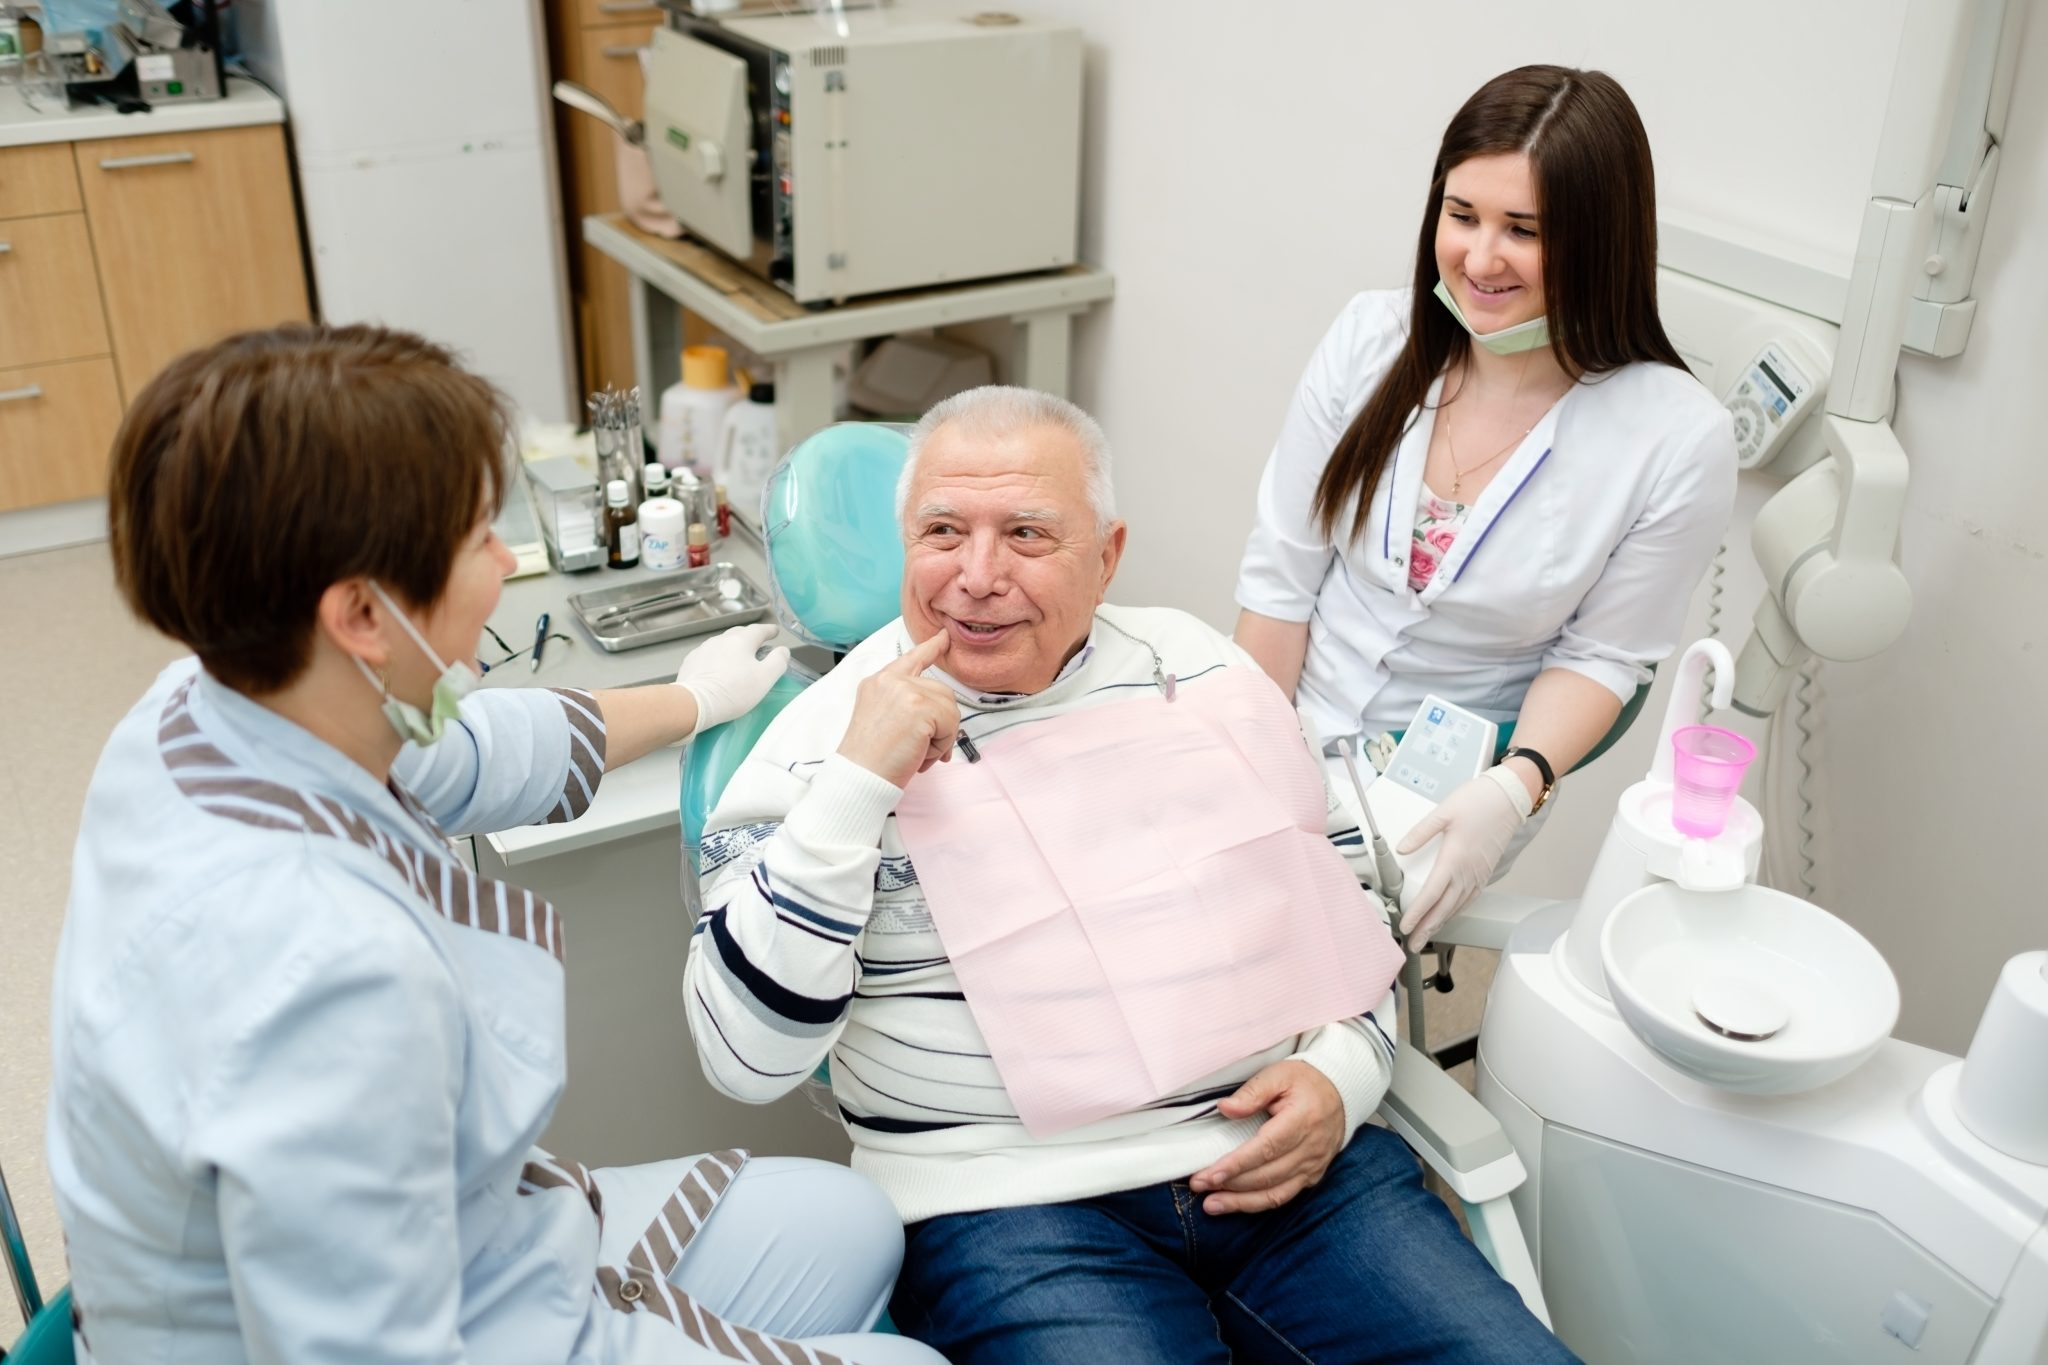 Dentist And Nurse Making Professional Teeth Checkup Male Senior Patient At The Dental Office. Dental Care For Older People. Dentistry, Medicine And Health Care Concept